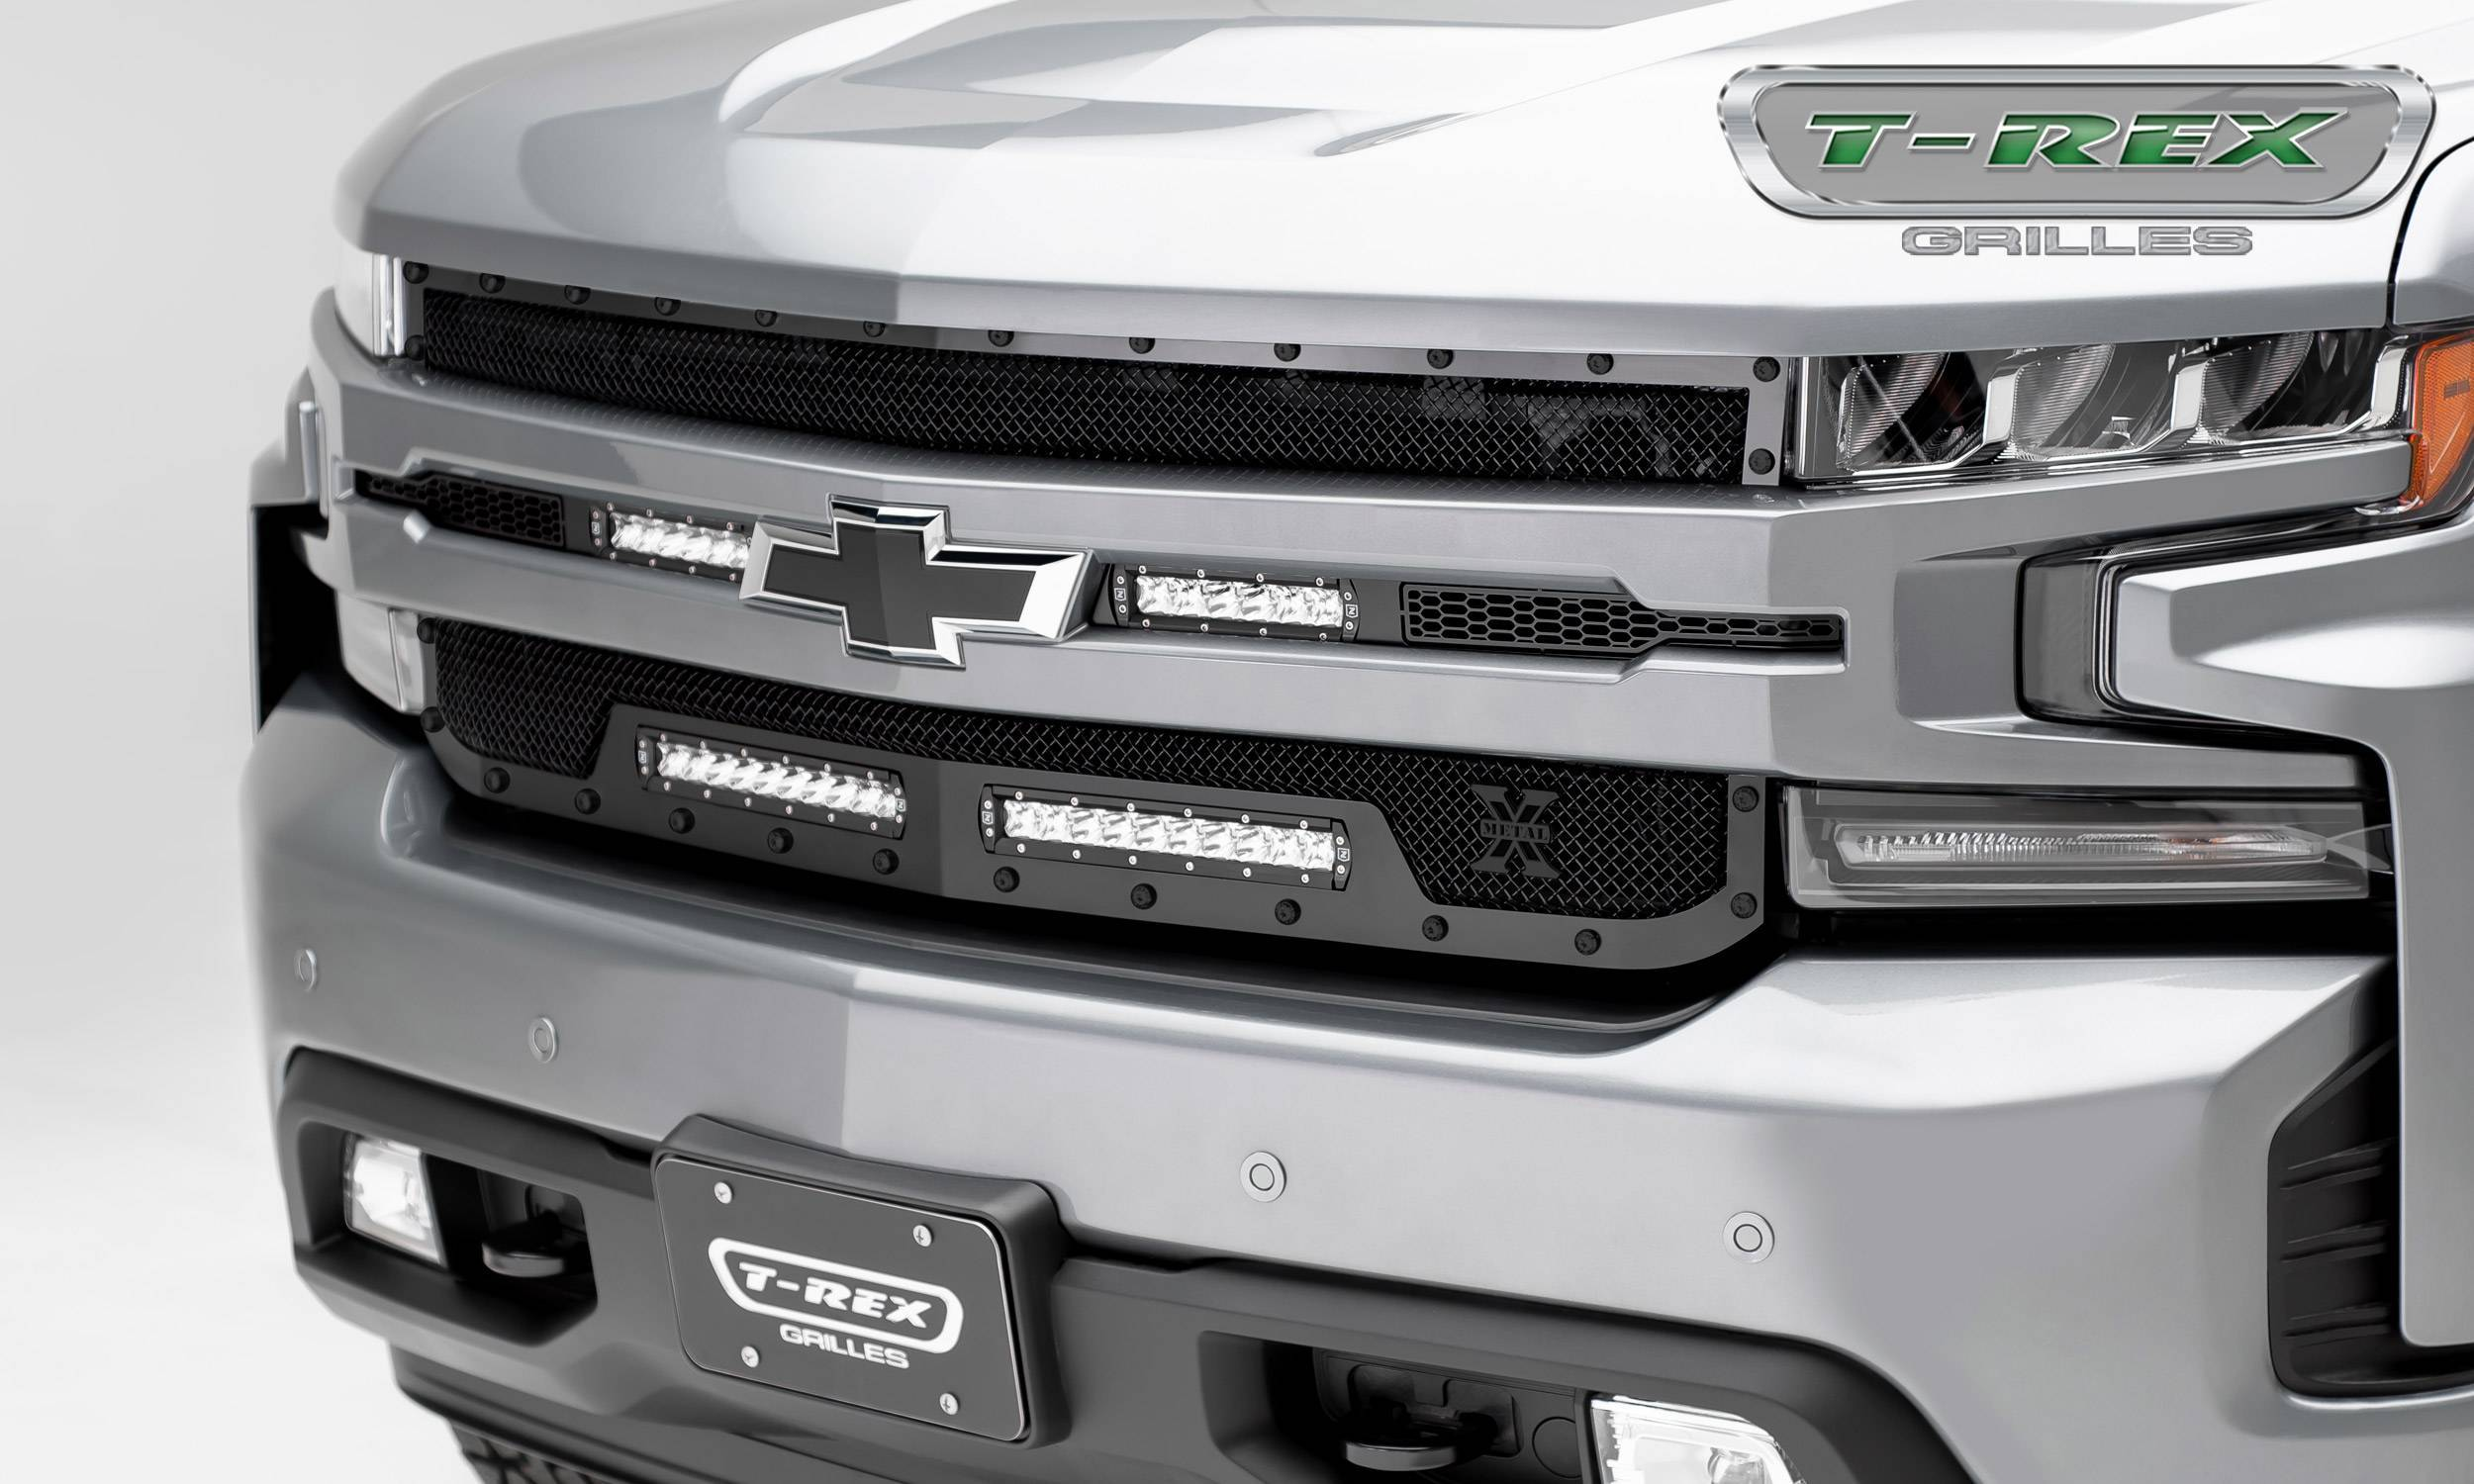 T-REX Grilles - 2019-2021 Silverado 1500 Stealth Torch Grille, Black, 1 Pc, Replacement, Black Studs with (2) 6 Inch and (2) 10 Inch LEDs, Does Not Fit Vehicles with Camera - PN #6311261-BR